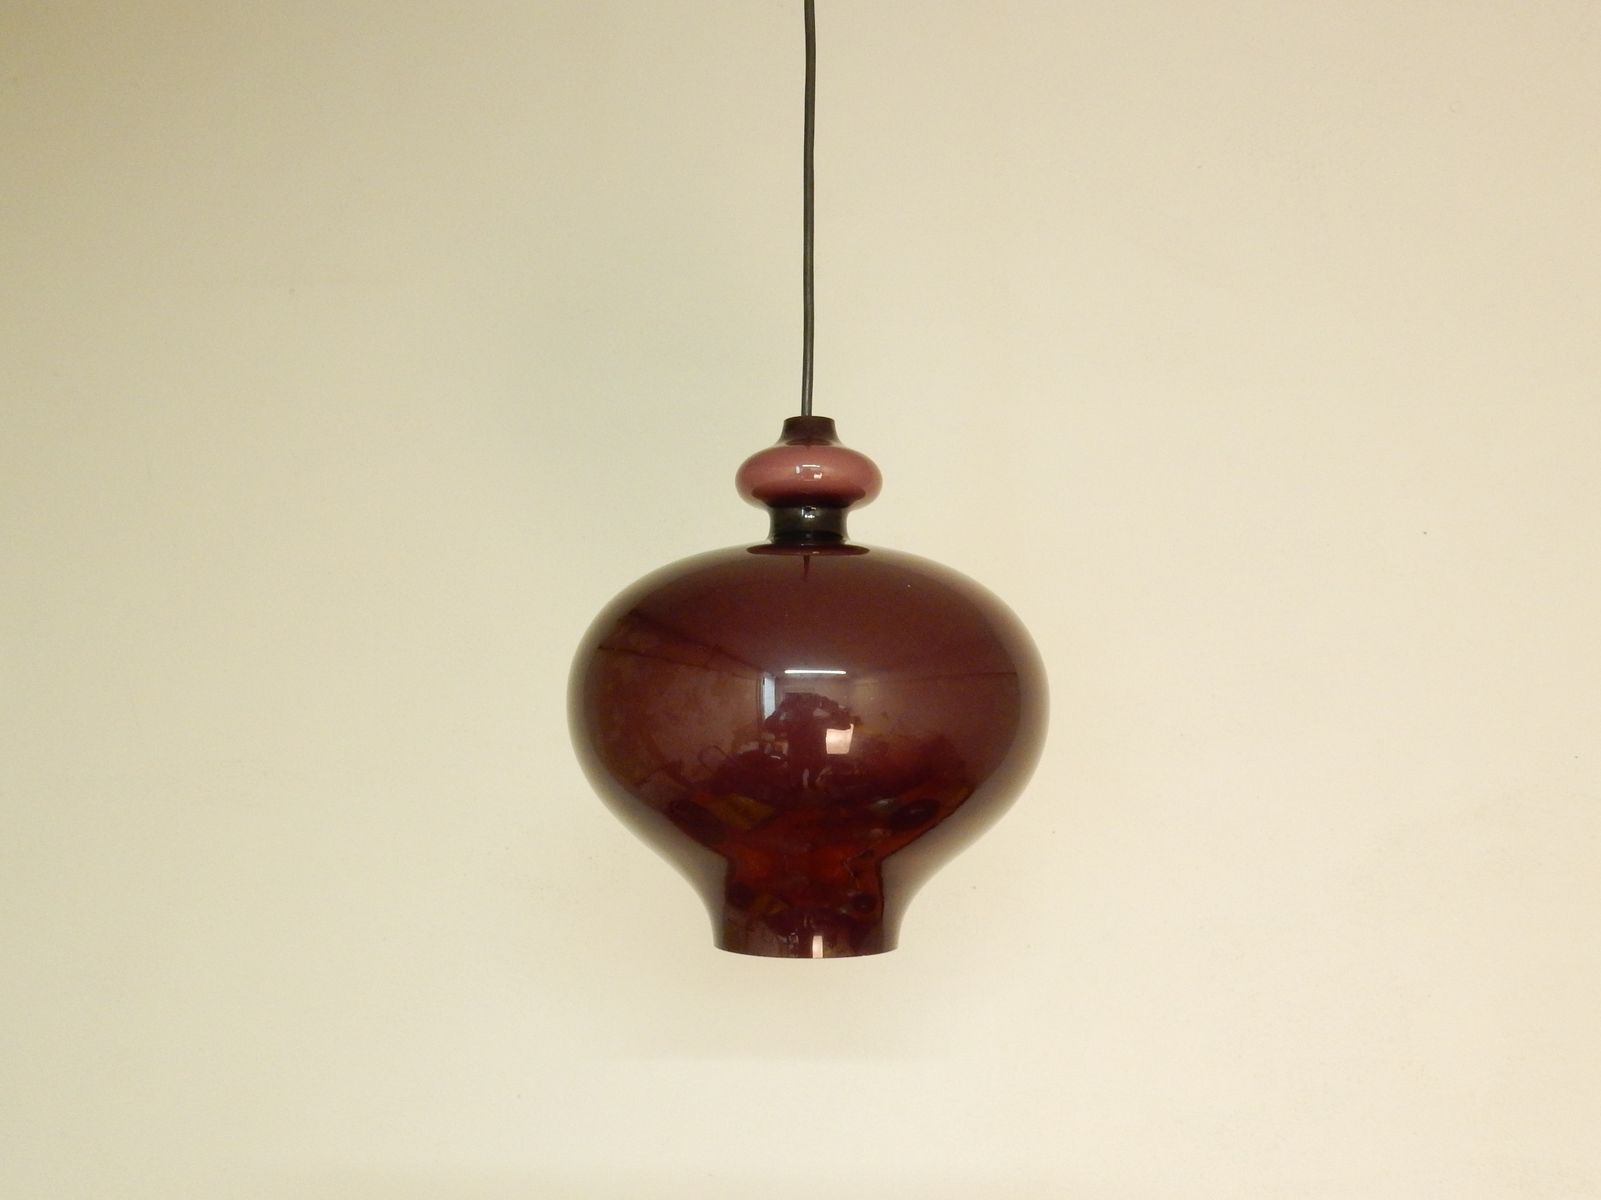 Purple glass pendant light by hans agne jakobsson 1960s for sale purple glass pendant light by hans agne jakobsson 1960s for sale at pamono arubaitofo Gallery